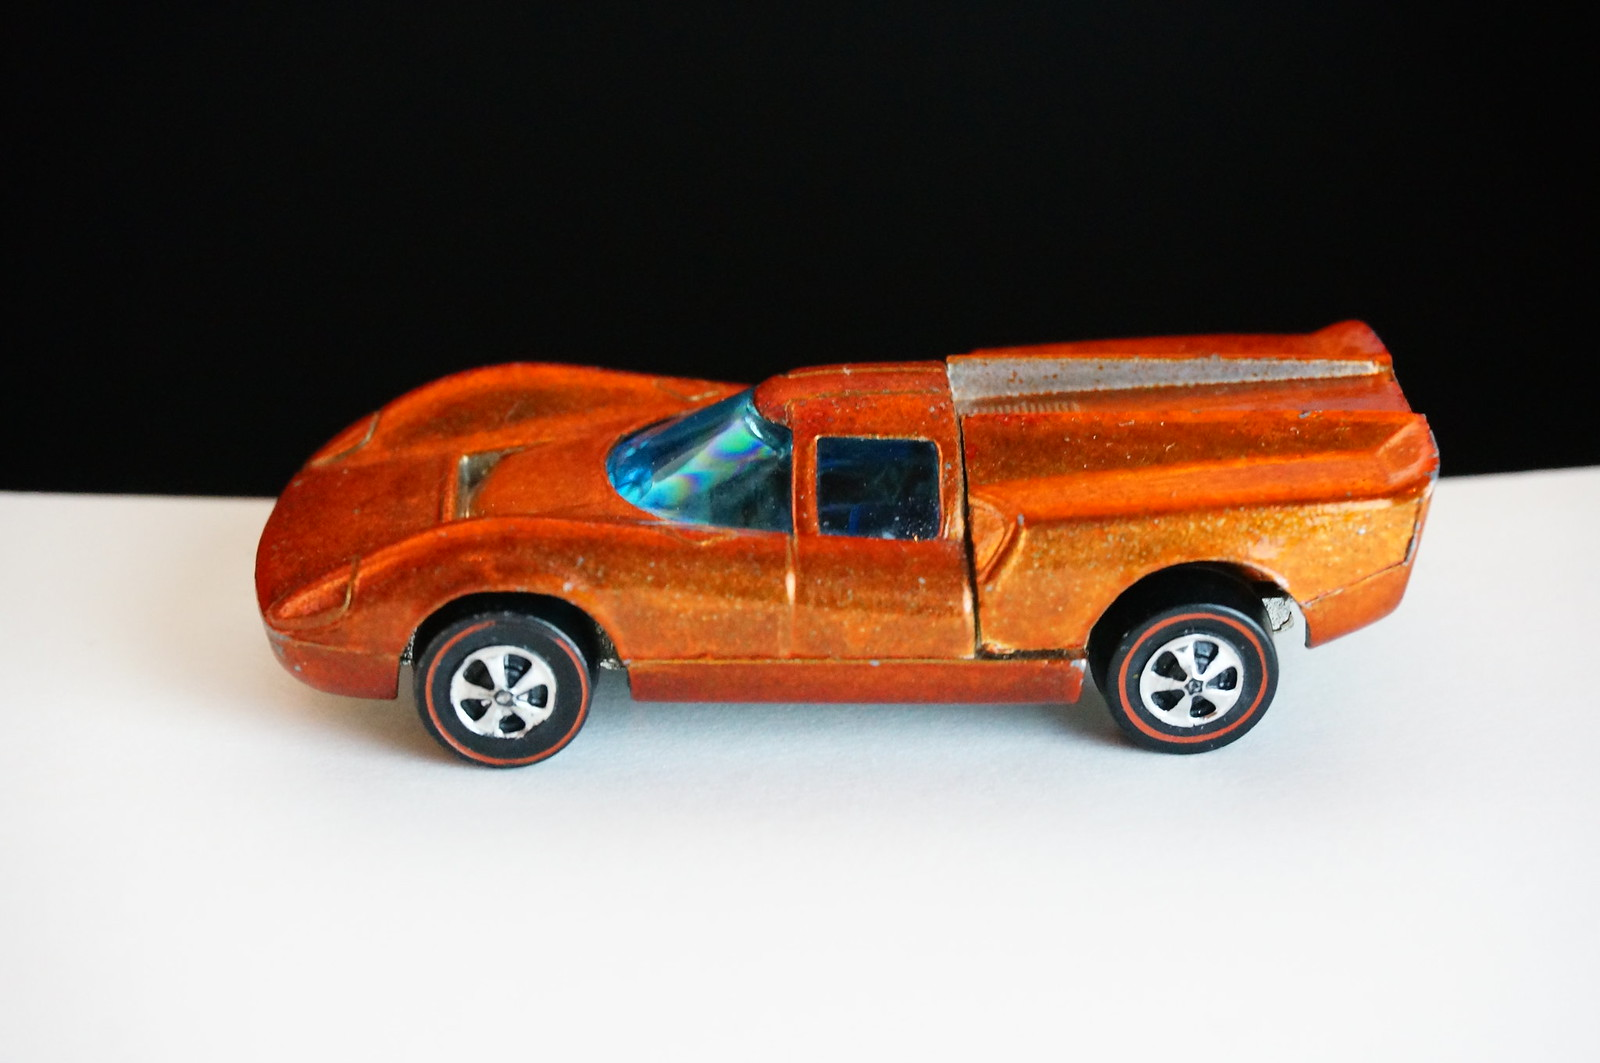 Hot Wheels Redline Orange Lola GT70